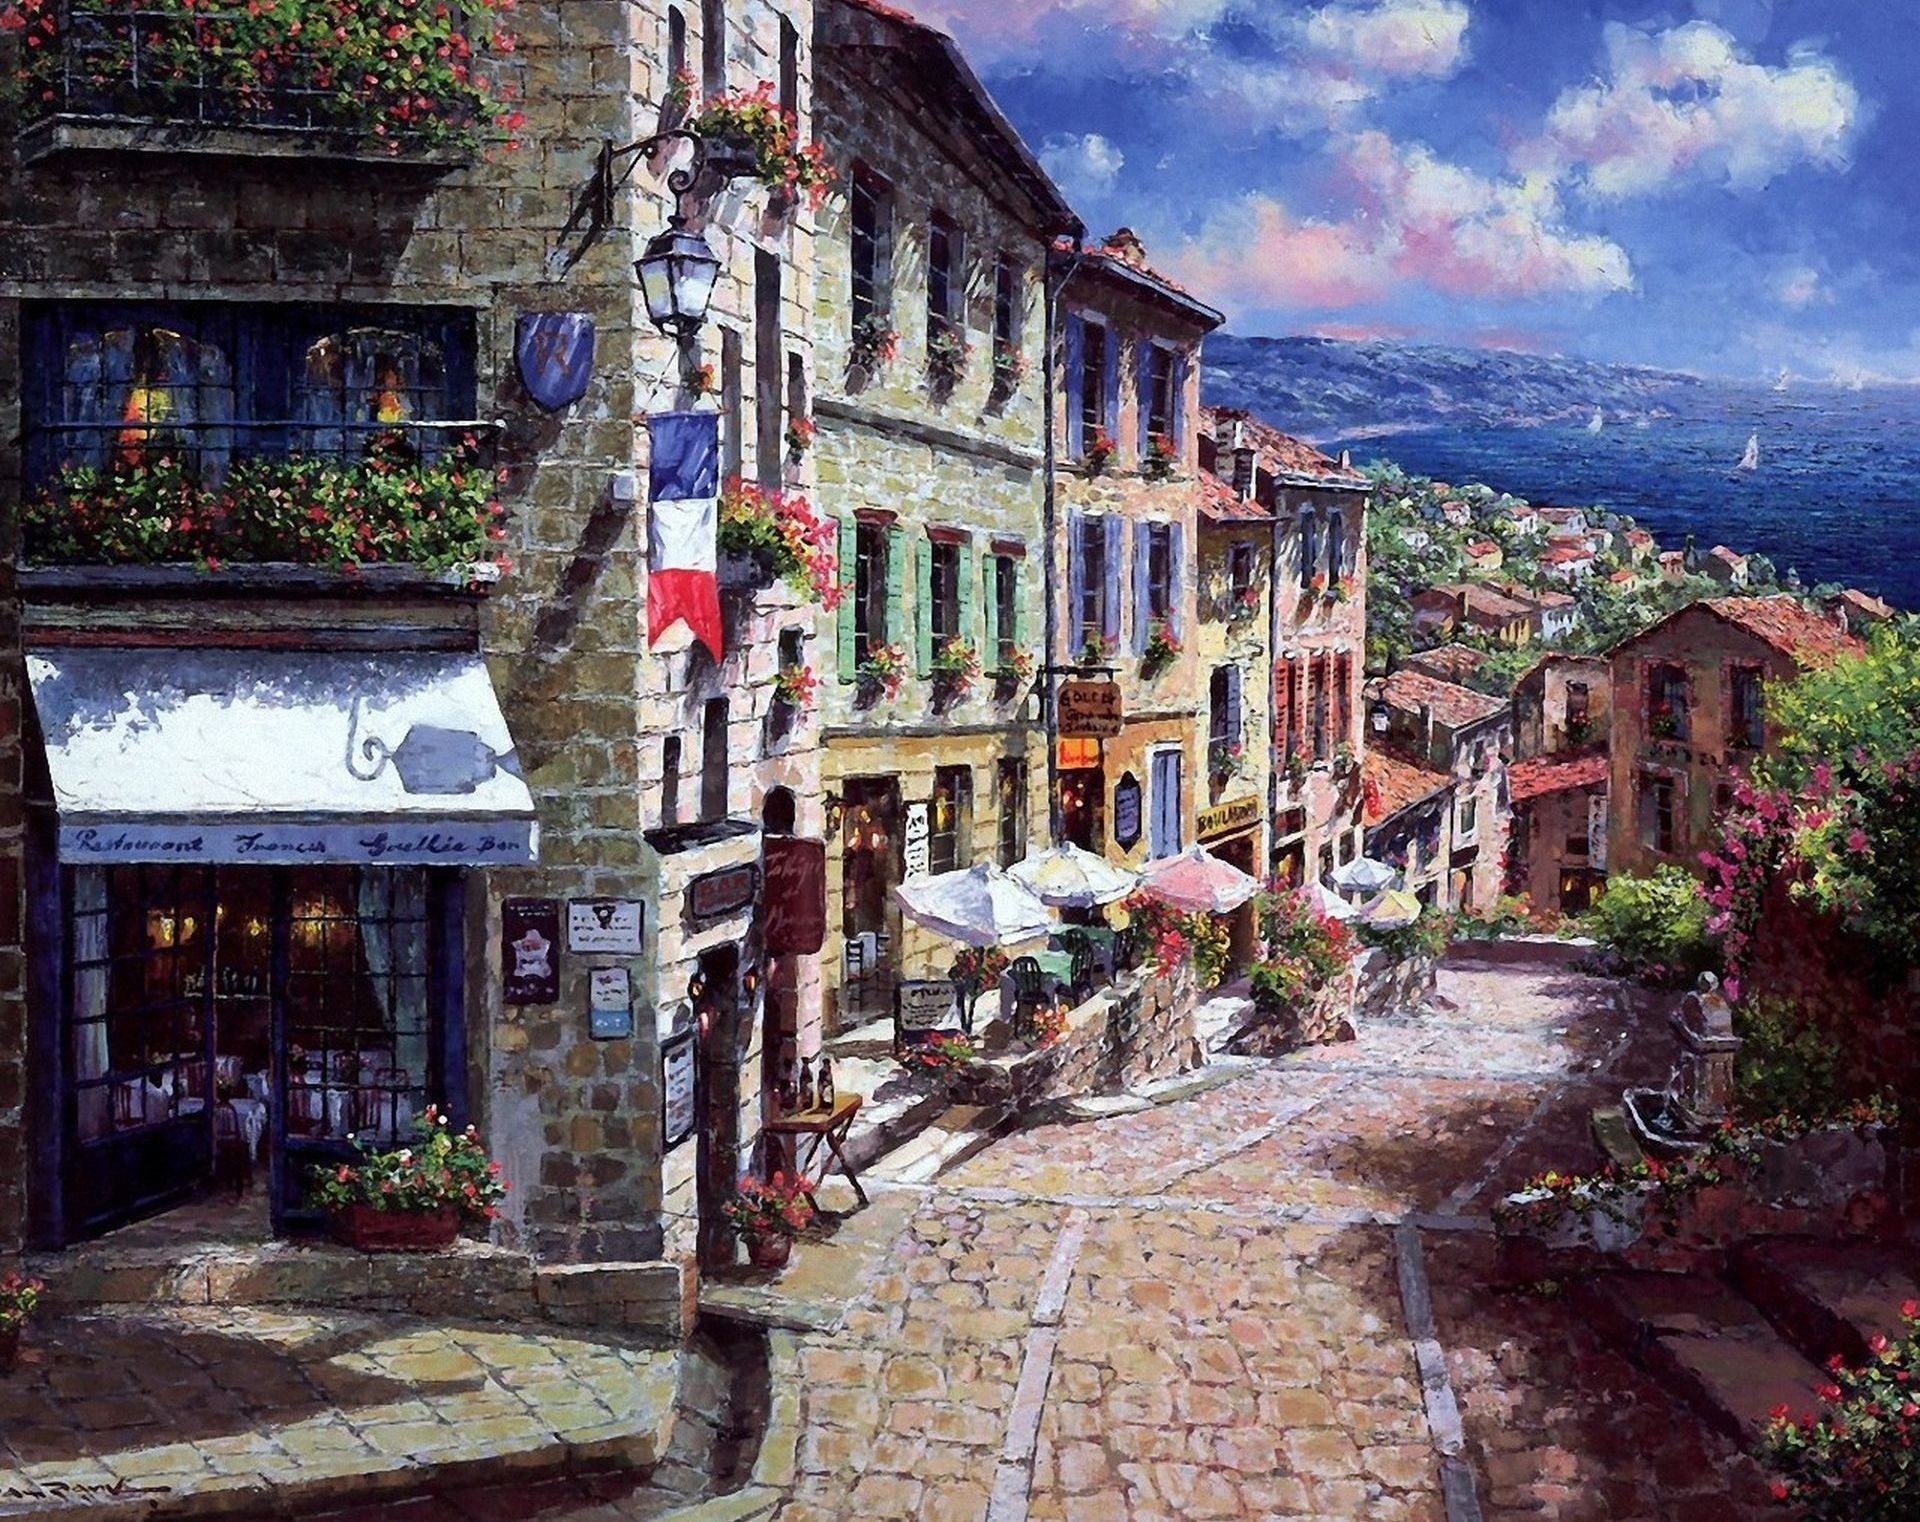 56093 download wallpaper Flowers, Houses, Art, Sea, Picture, France, Lamp, Lantern, Street, Flag, Balconies, Restaurant, Town, Sailboats, Umbrellas, Mostovaya, Pavement screensavers and pictures for free